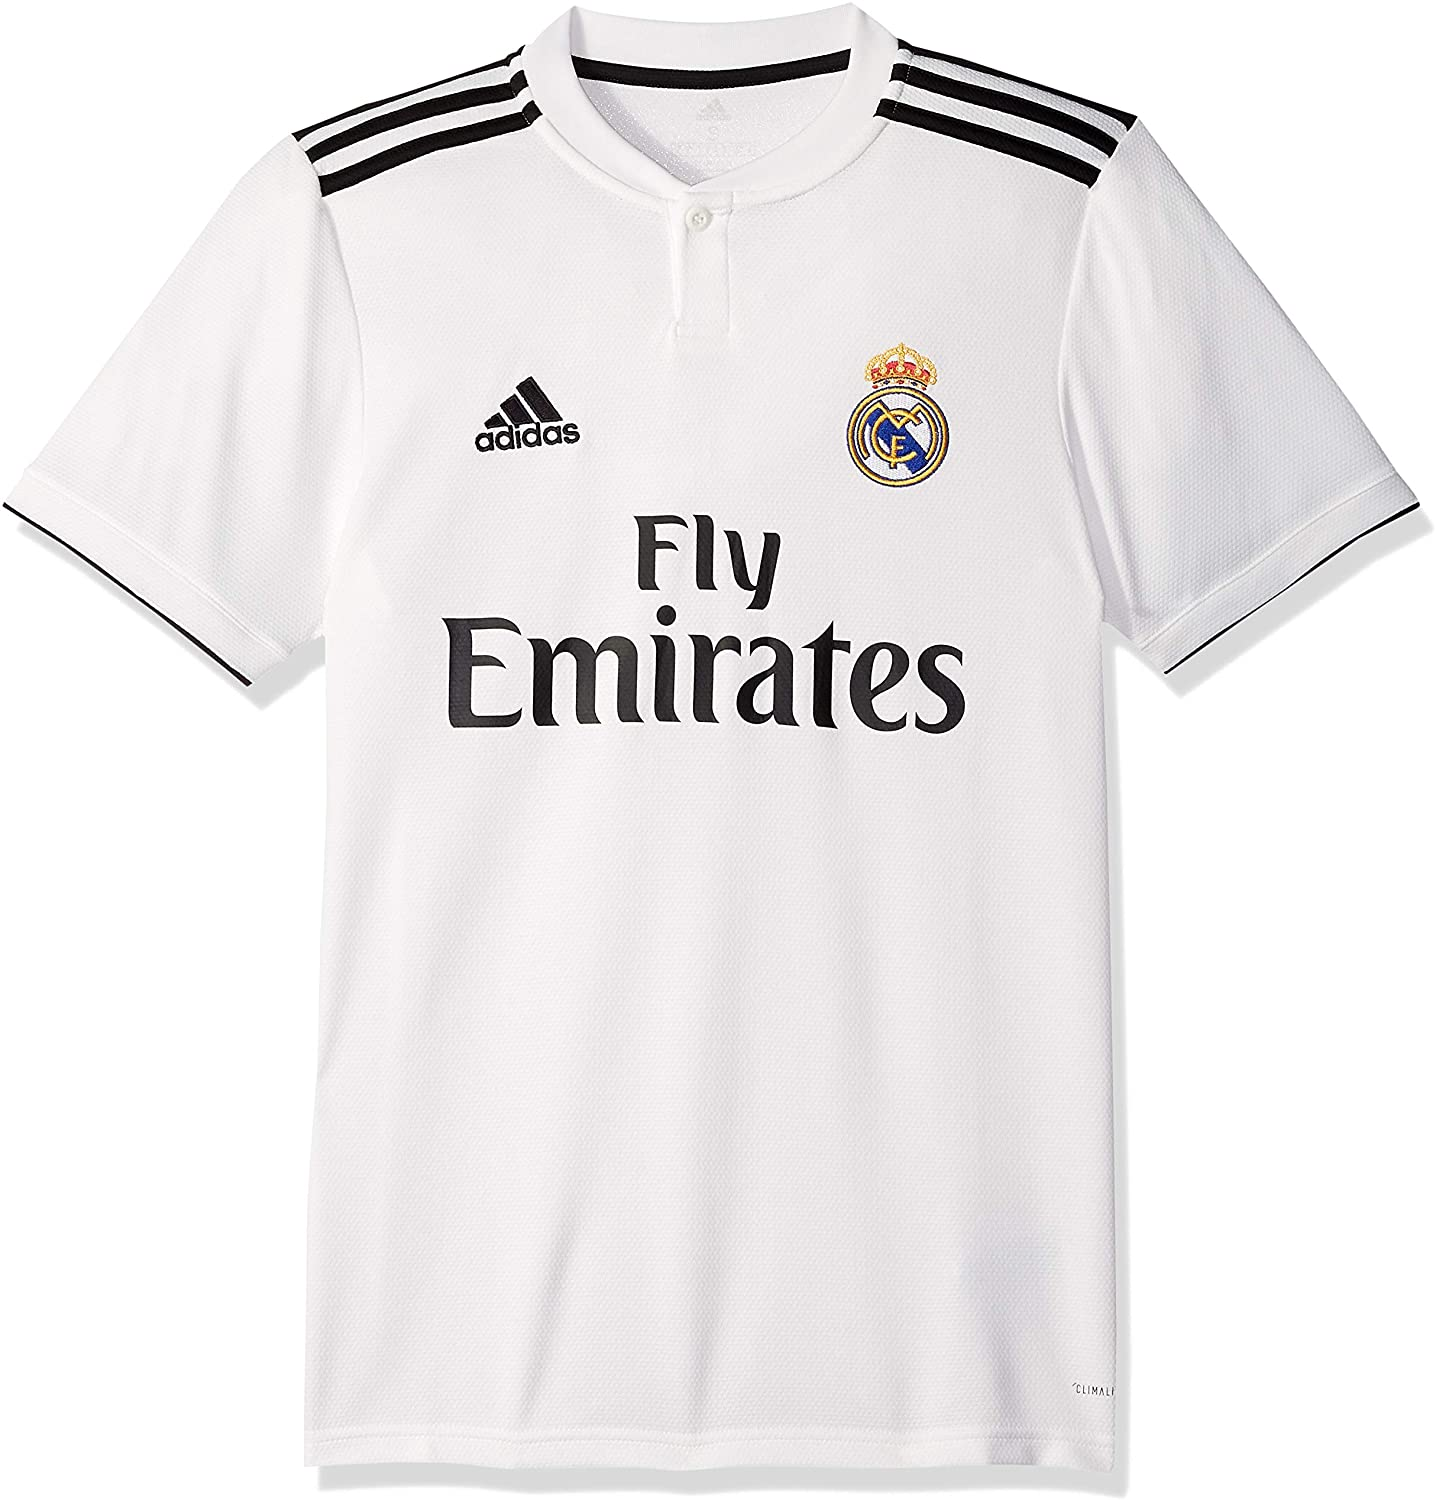 Amazon.com : adidas Soccer Real Madrid Home Jersey : Sports & Outdoors